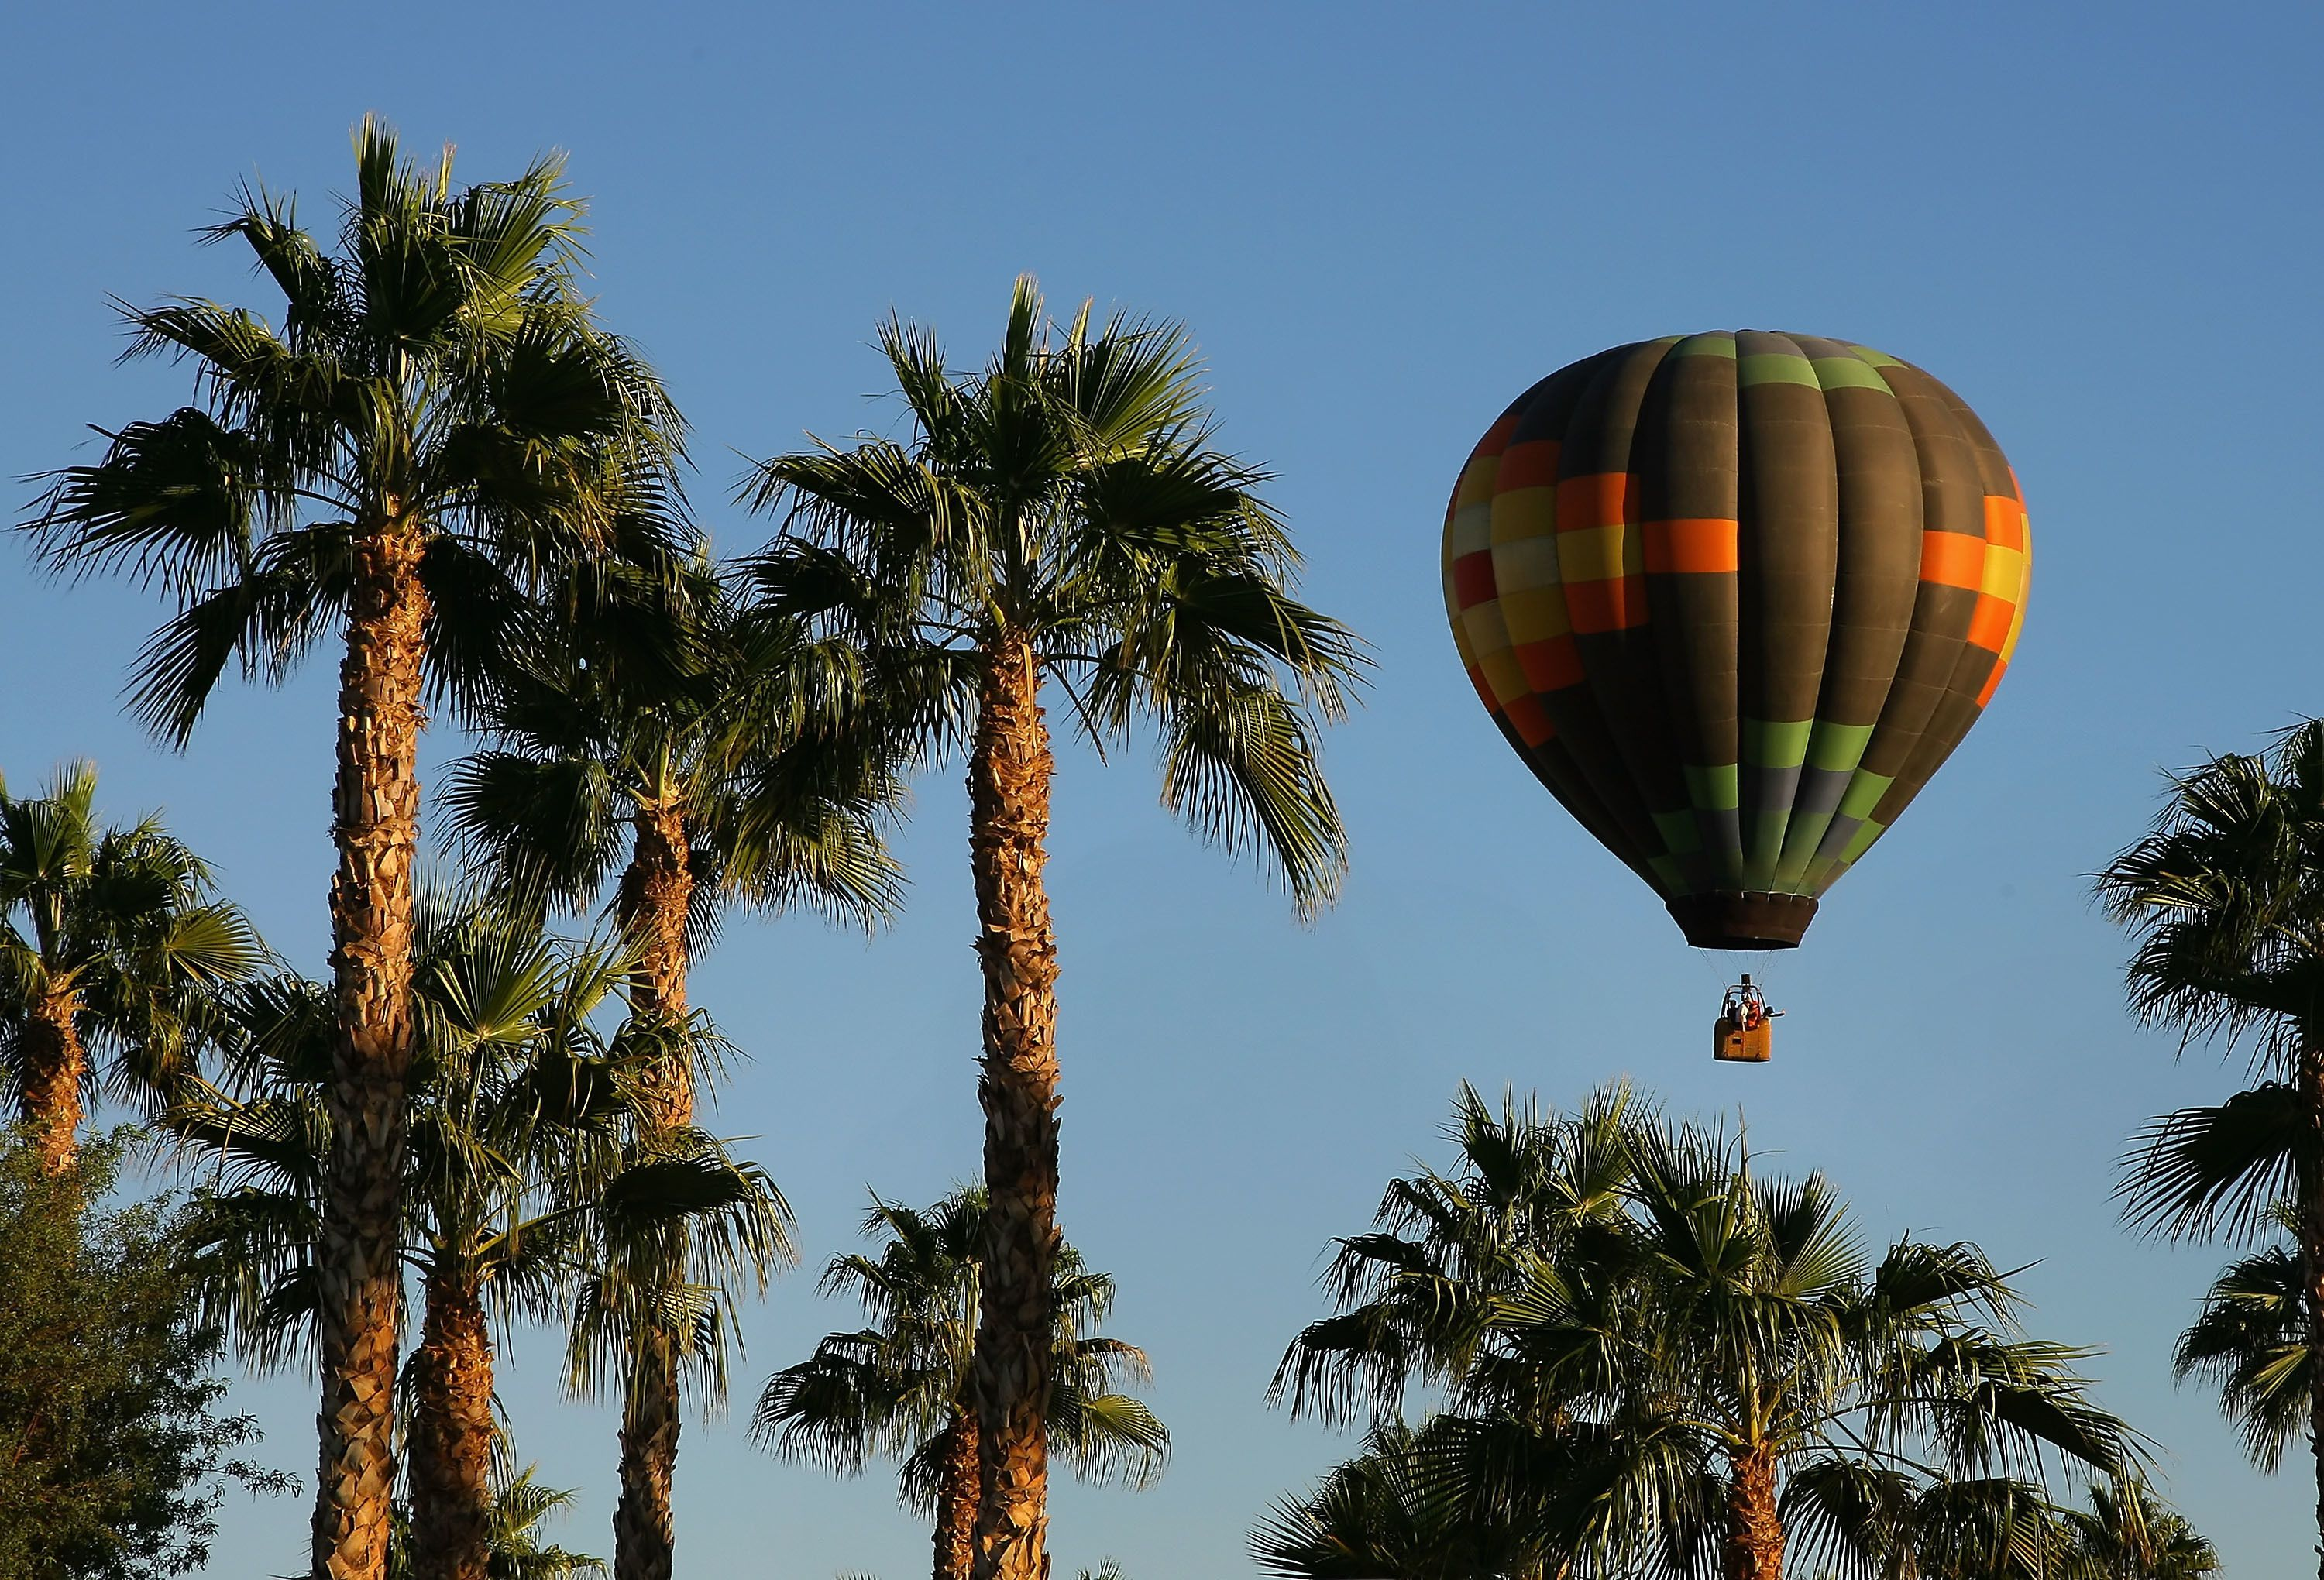 Sunrise Hot Air Balloon Ride in Palm Desert by Palm Springs